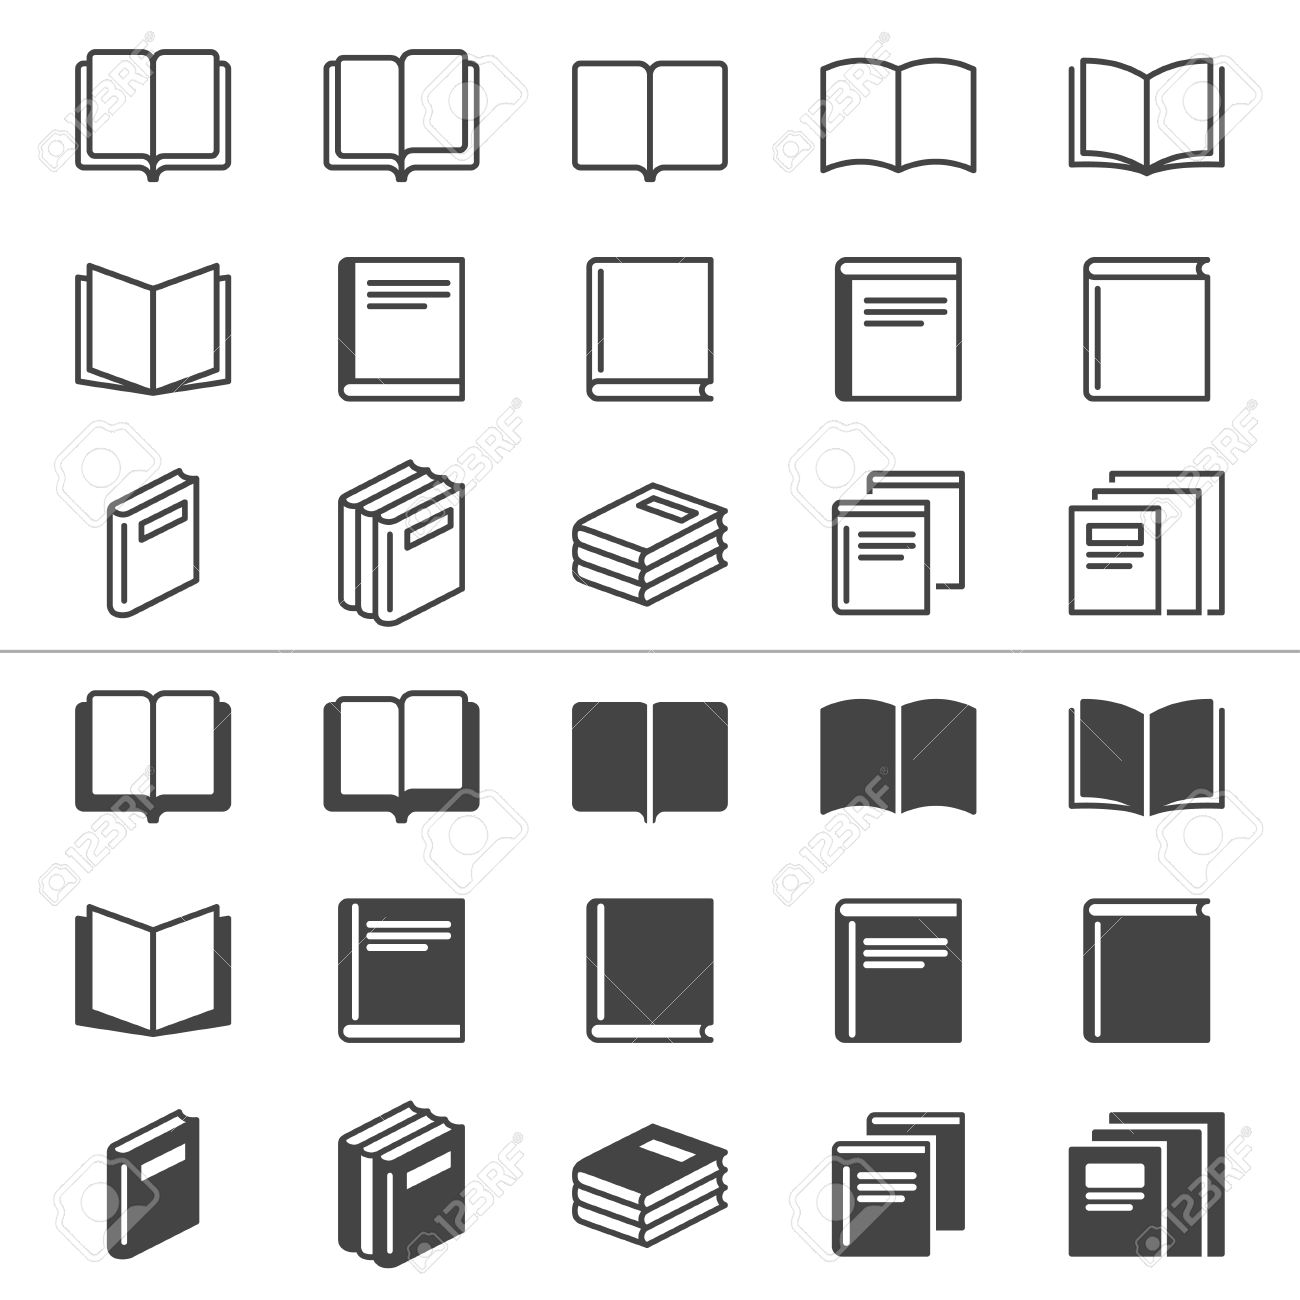 Book thin icons, included normal and enable state Stock Vector - 24193855